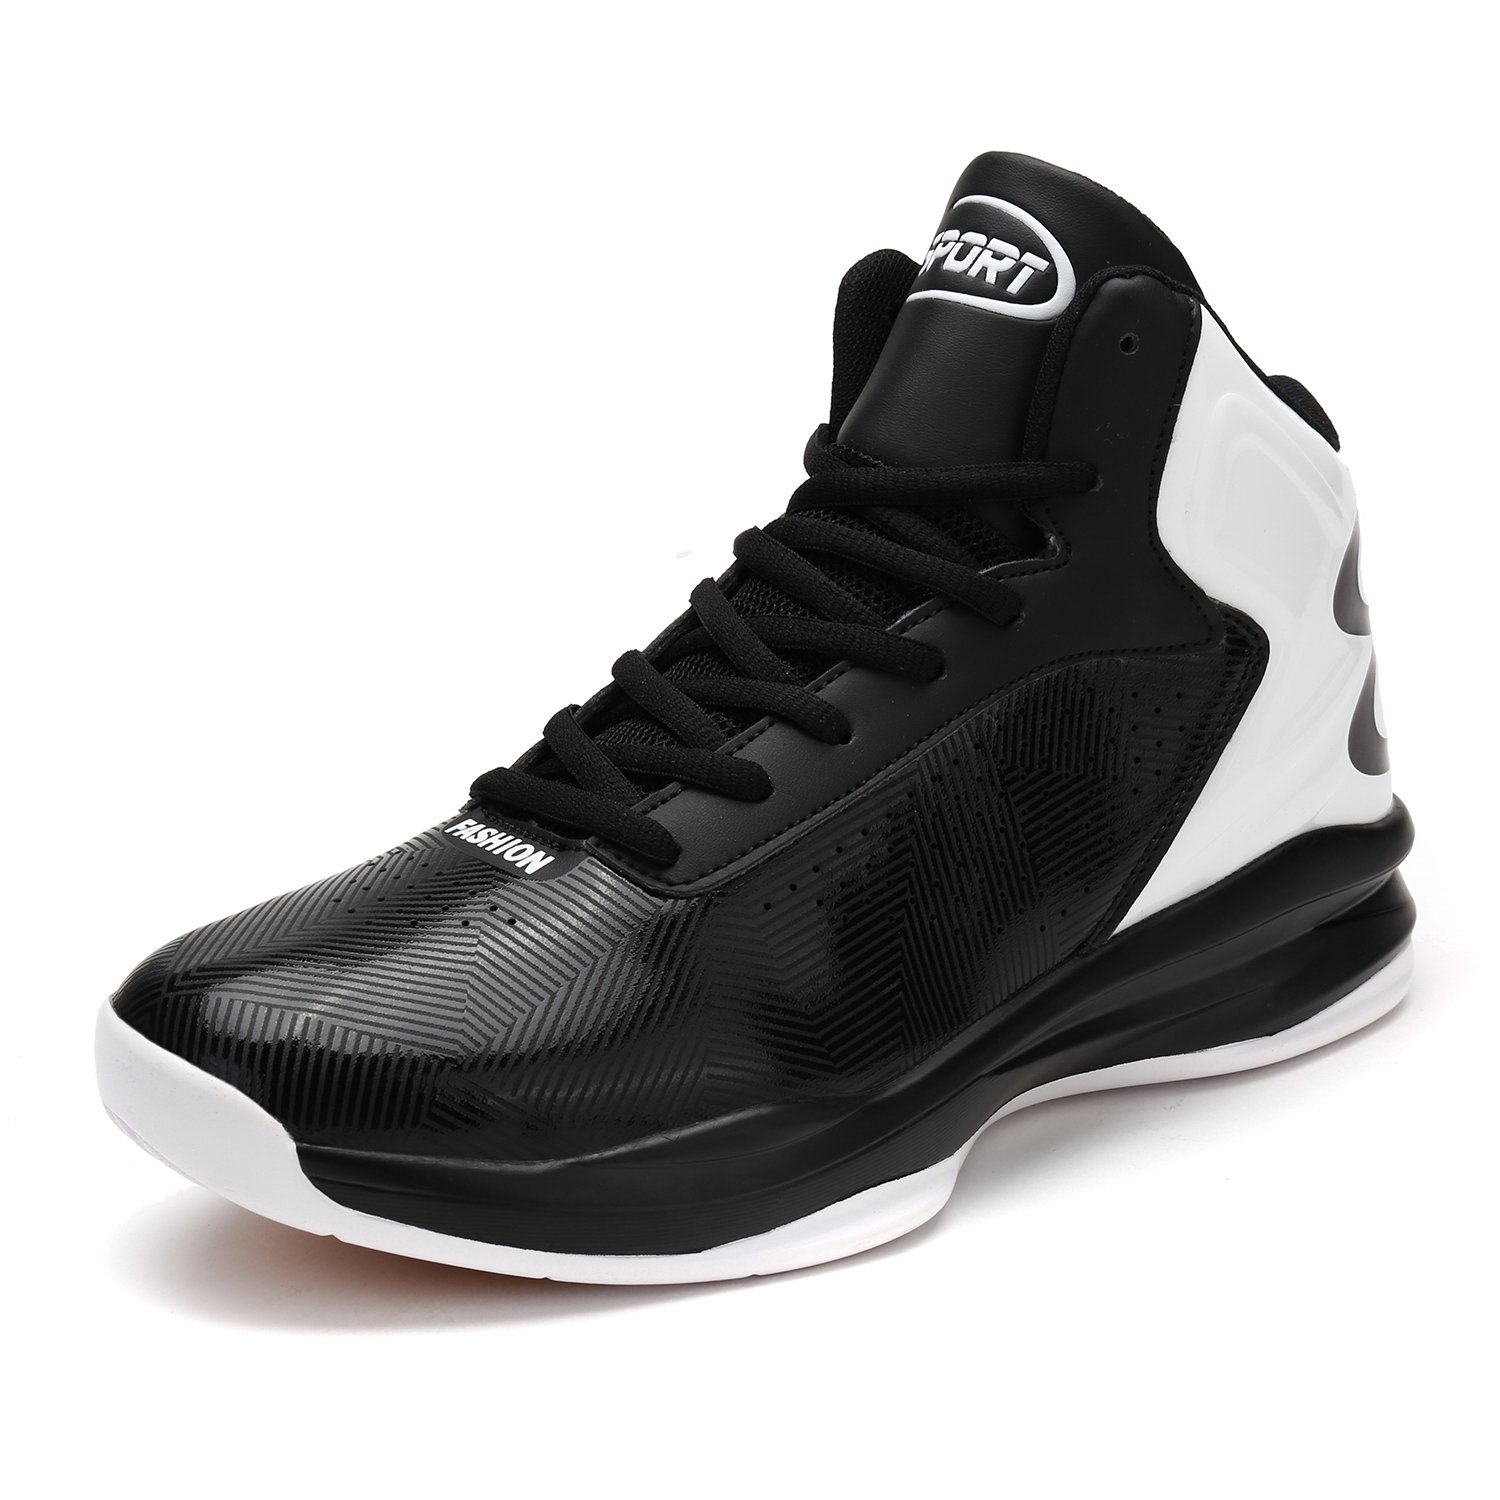 Men s Air Performance Allstart Sports Shoe Running Casual Ankle-High Breathable Mid Basketball Shoes Sneaker for Boy